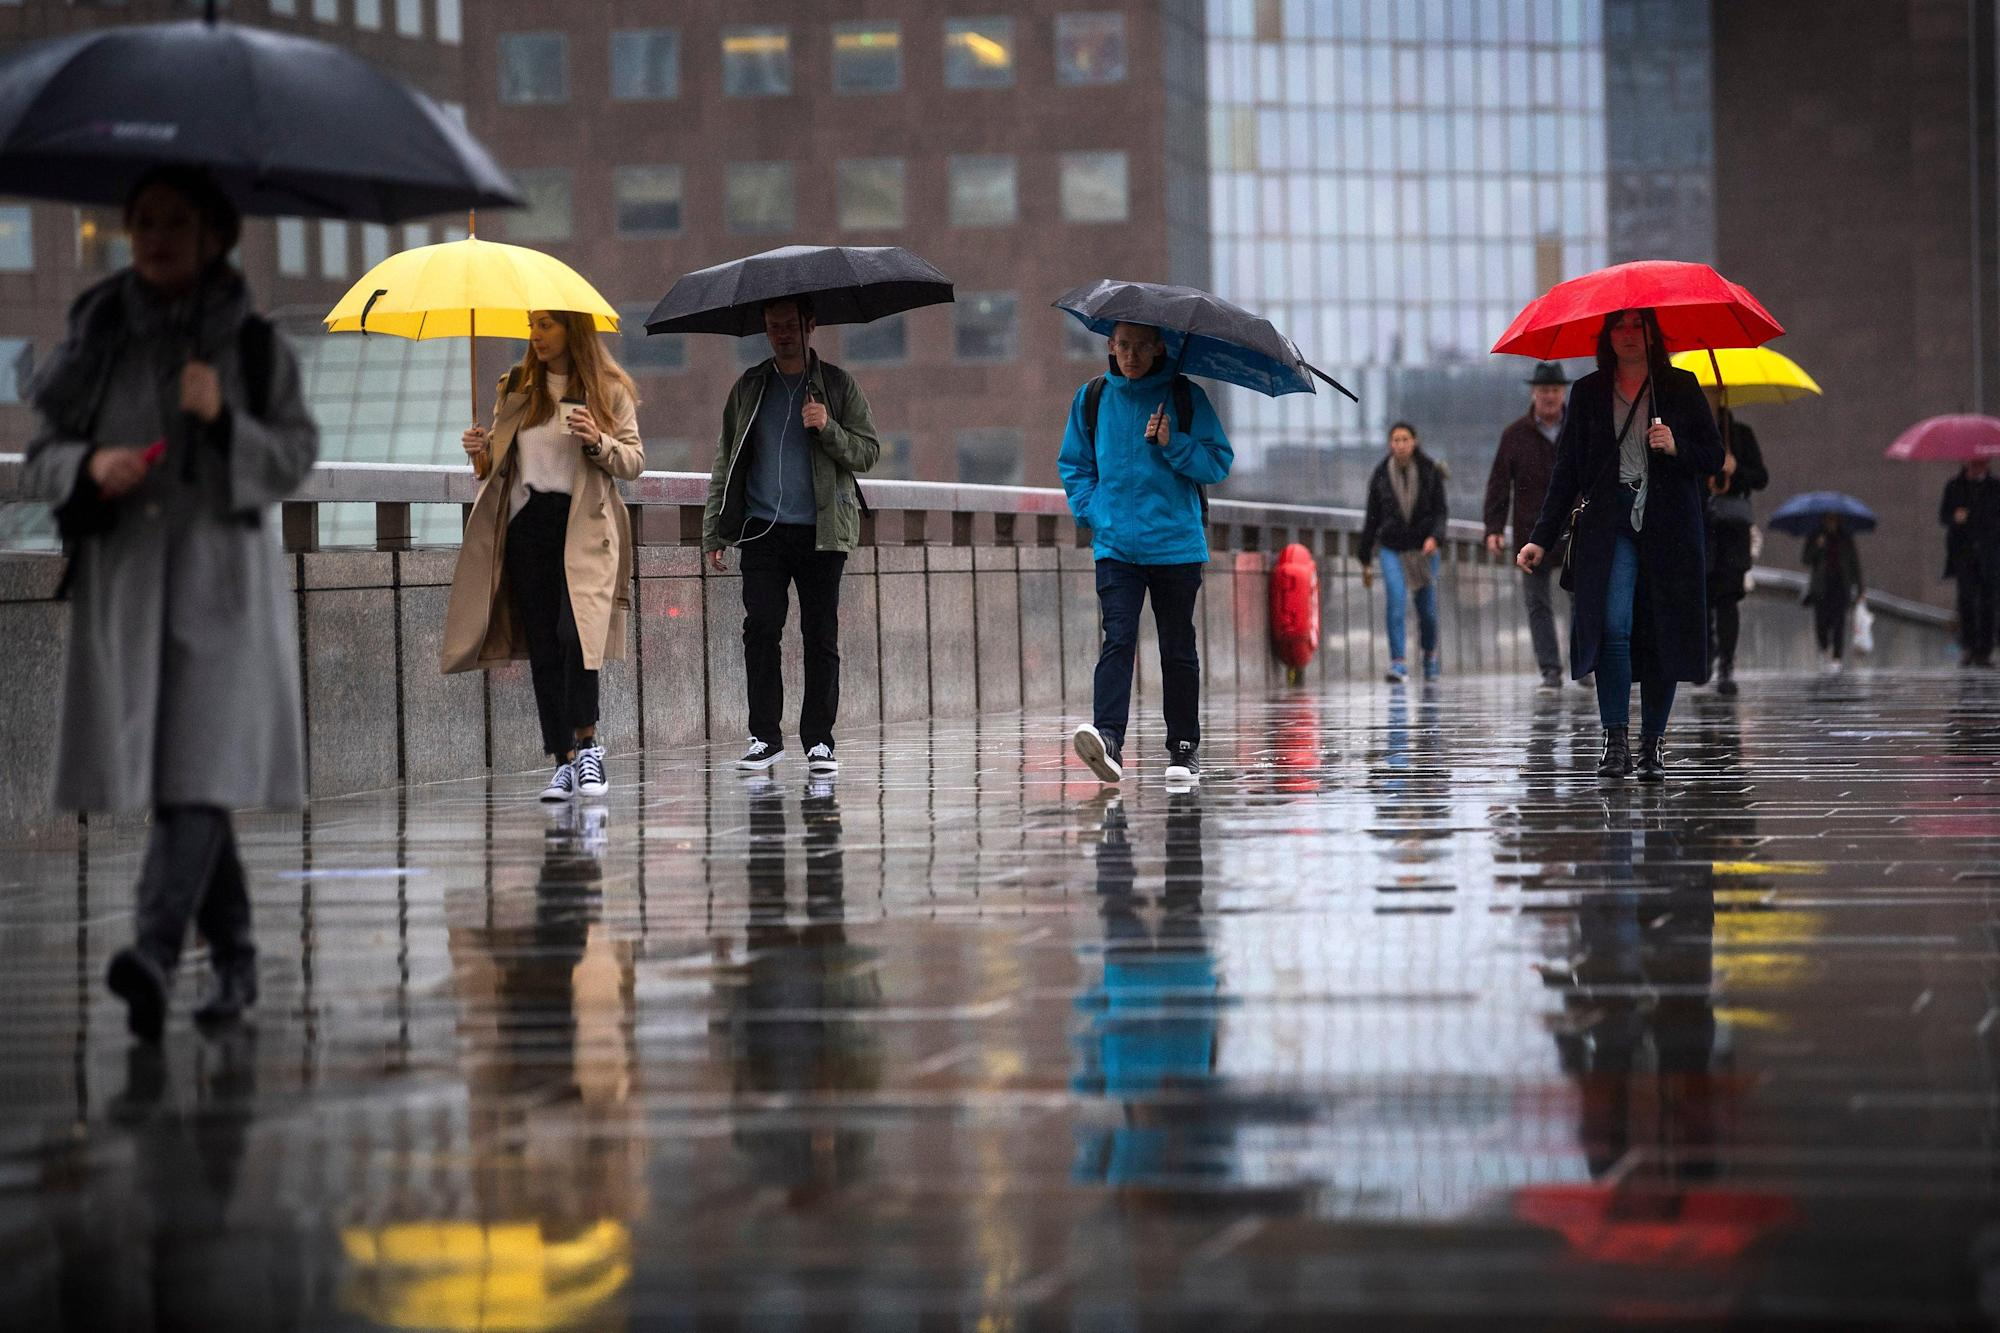 UK weather: Heavy rain and strong winds to hit some areas